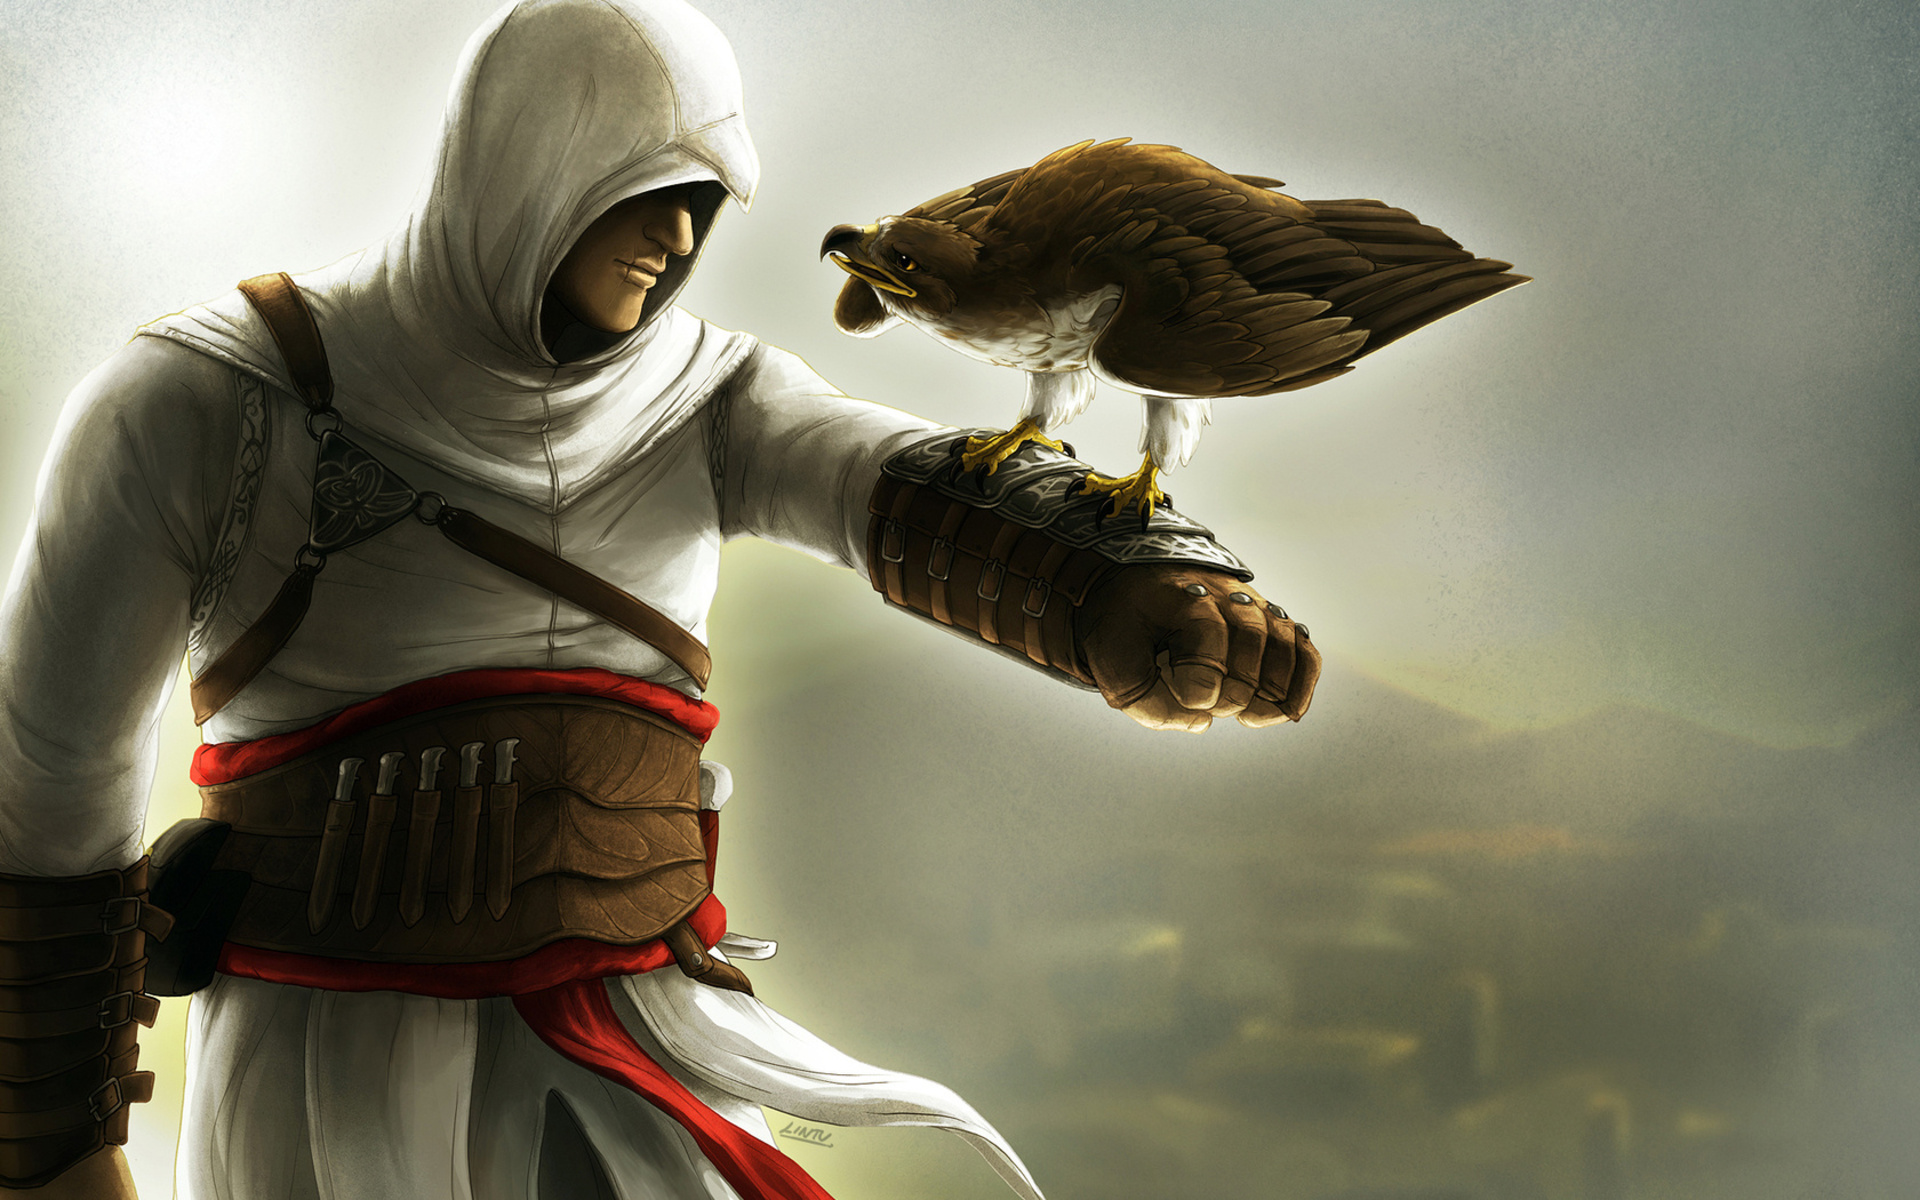 Art - Assassin's Creed Арт